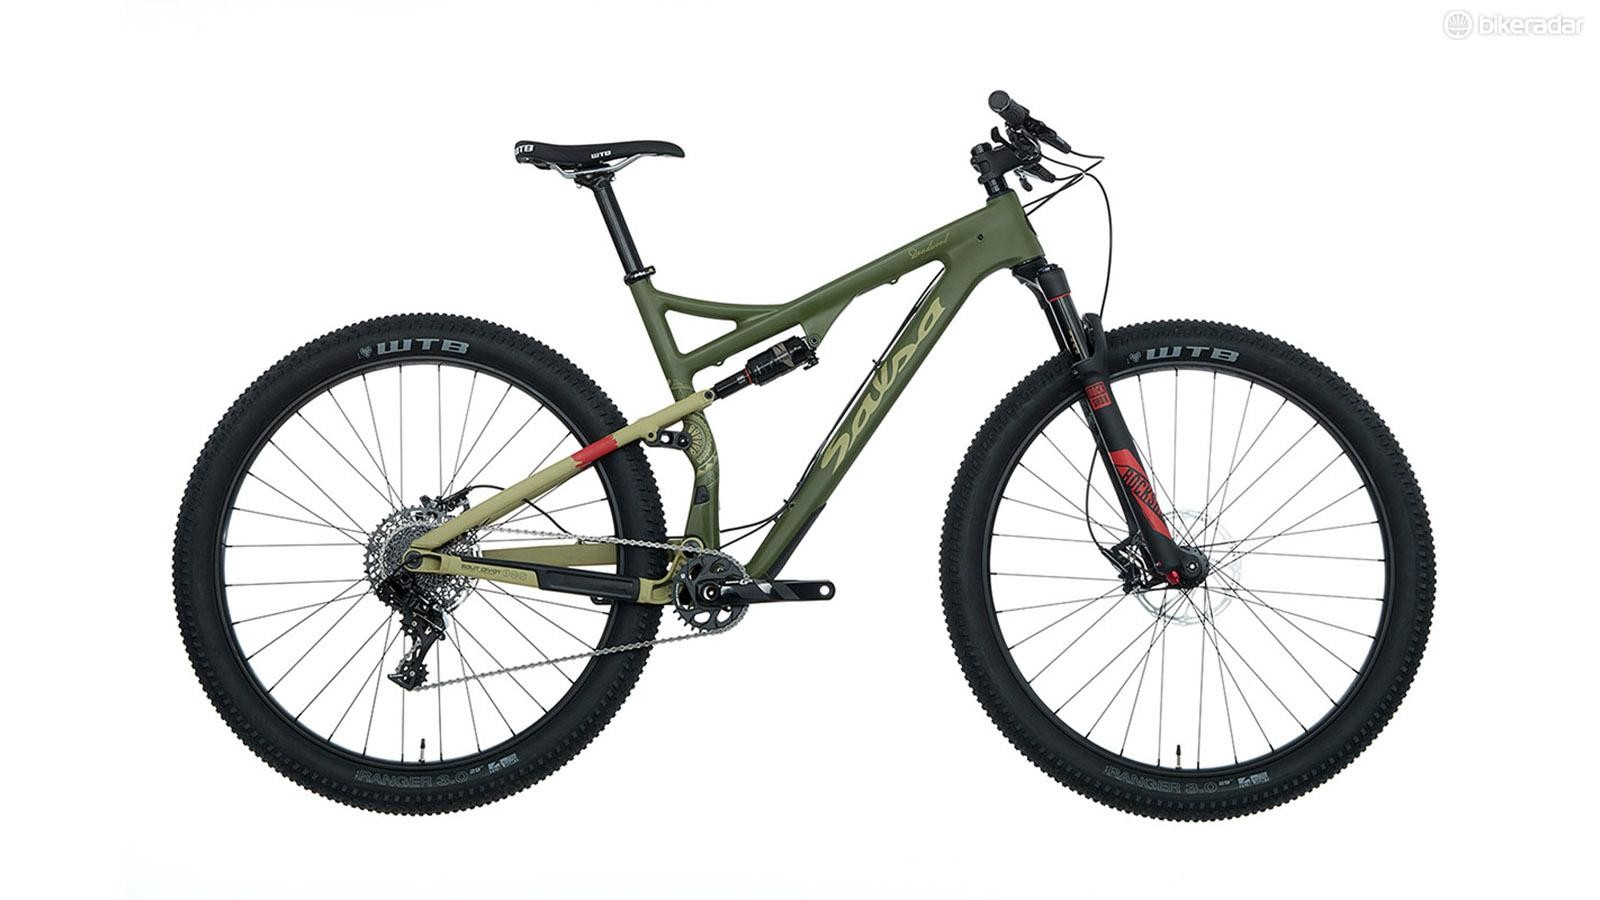 The entry-level build uses SRAM GX1